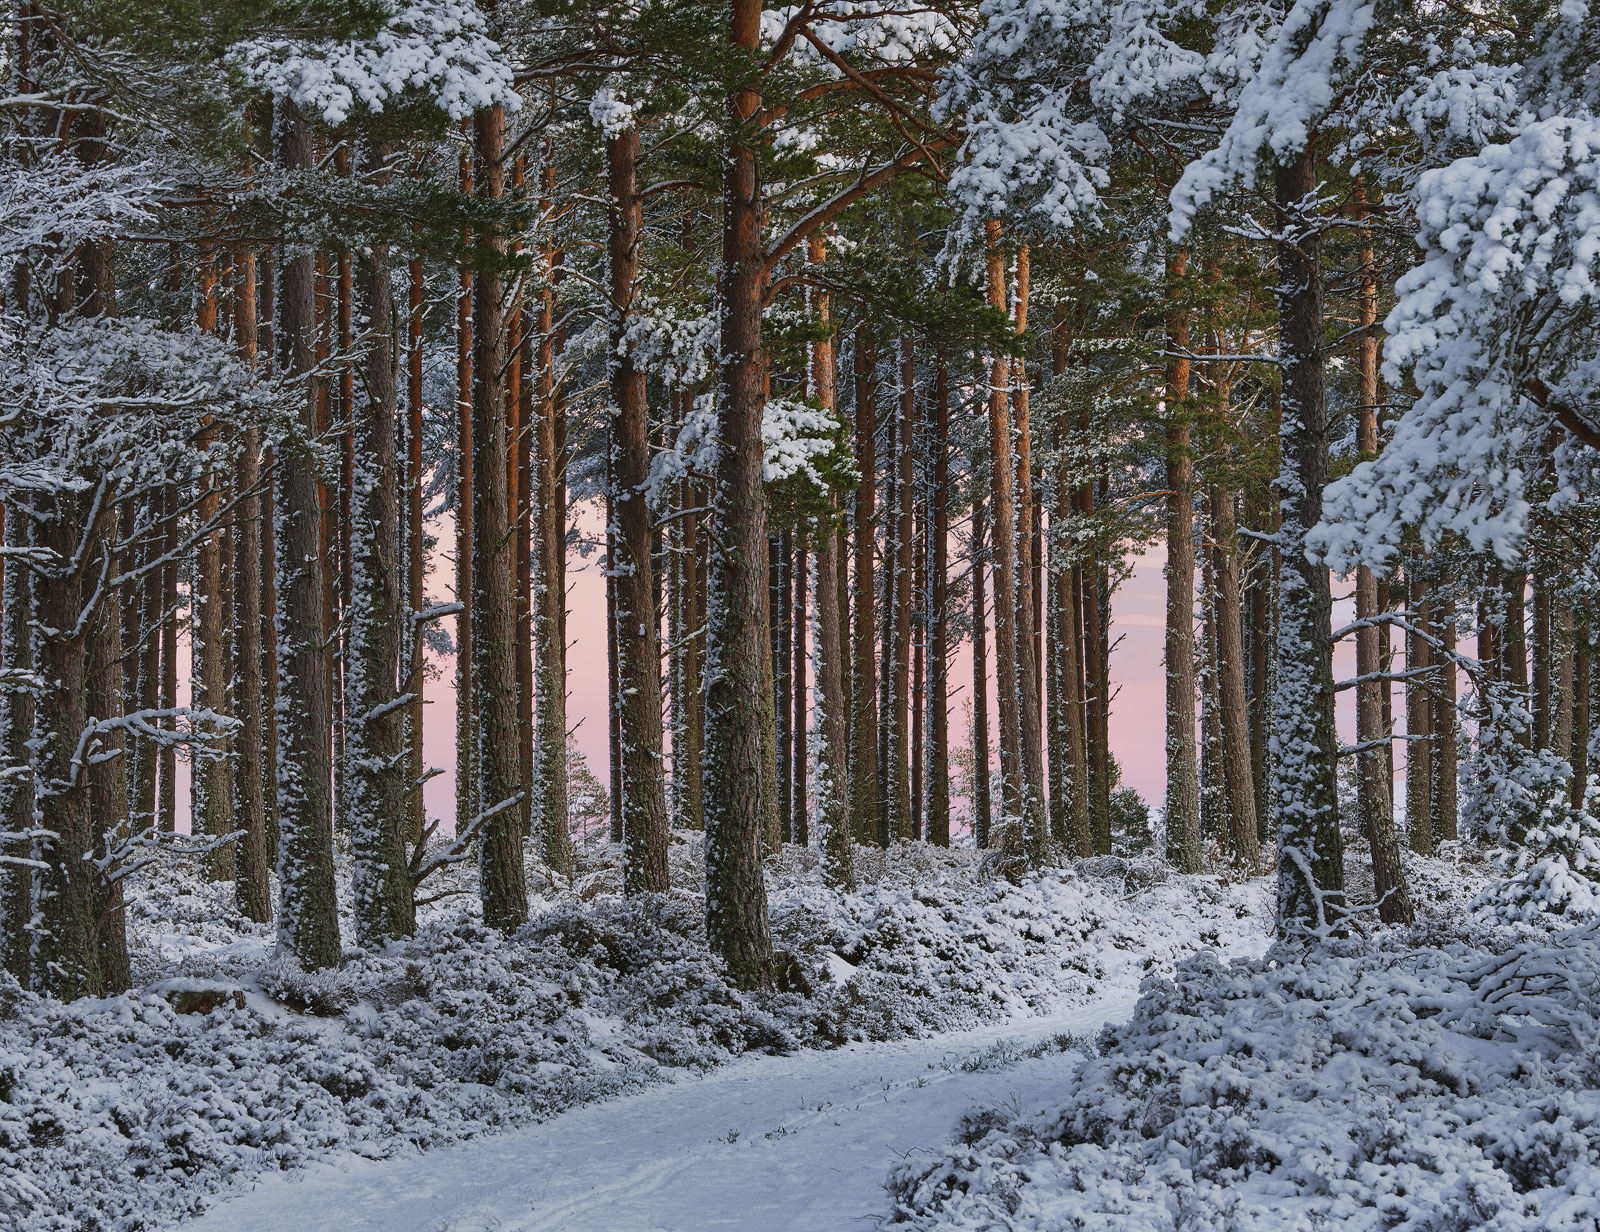 Being deep inside a very dense stand of snow spattered pine trees meant that I had very little idea as to what might be happening...